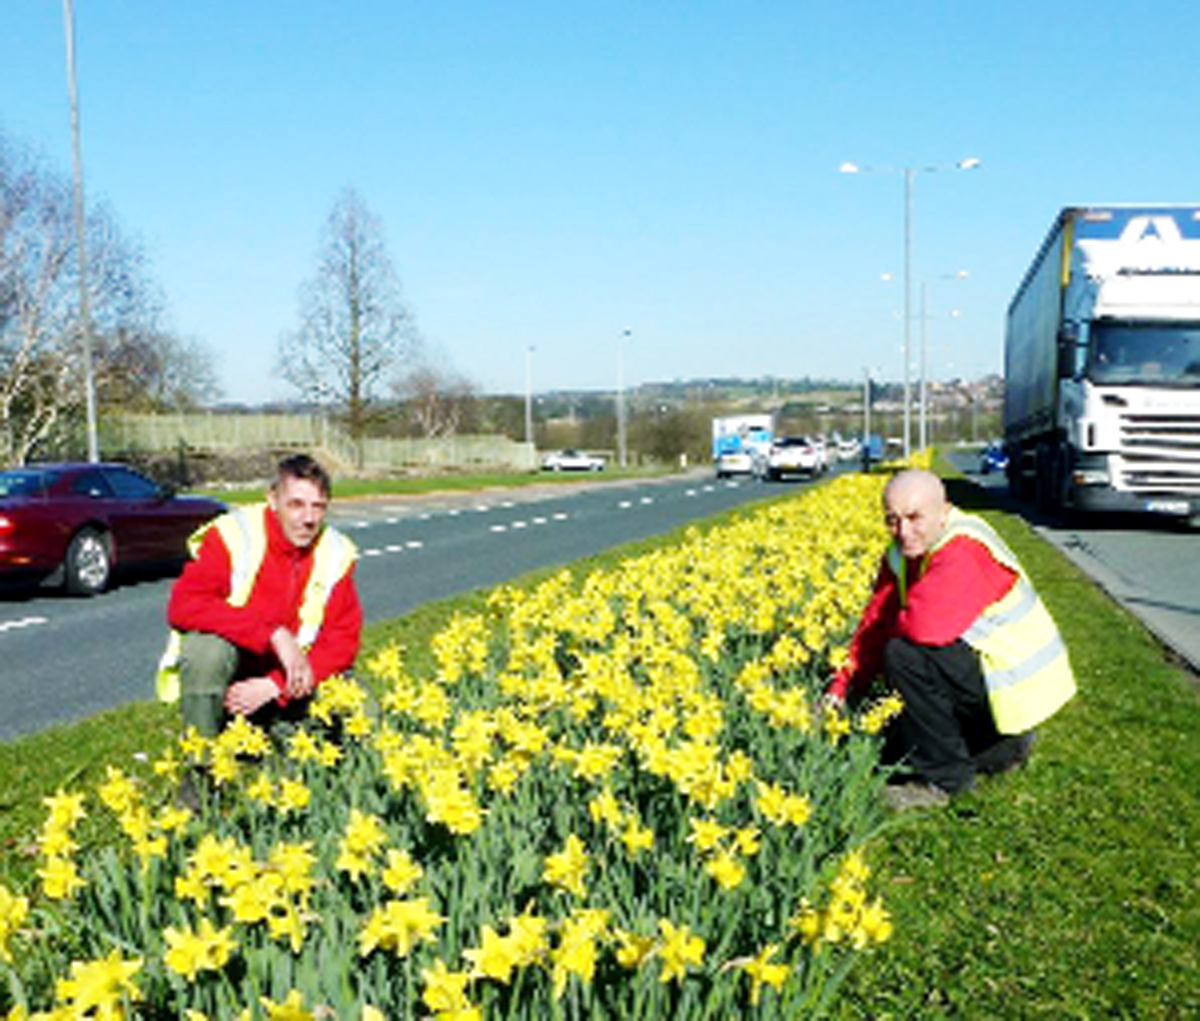 IN BLOOM: Chorley Council Streetscene workers Paul Marsh, left, and Dave Pennington with the daffodils on Millennium Way, Chorley